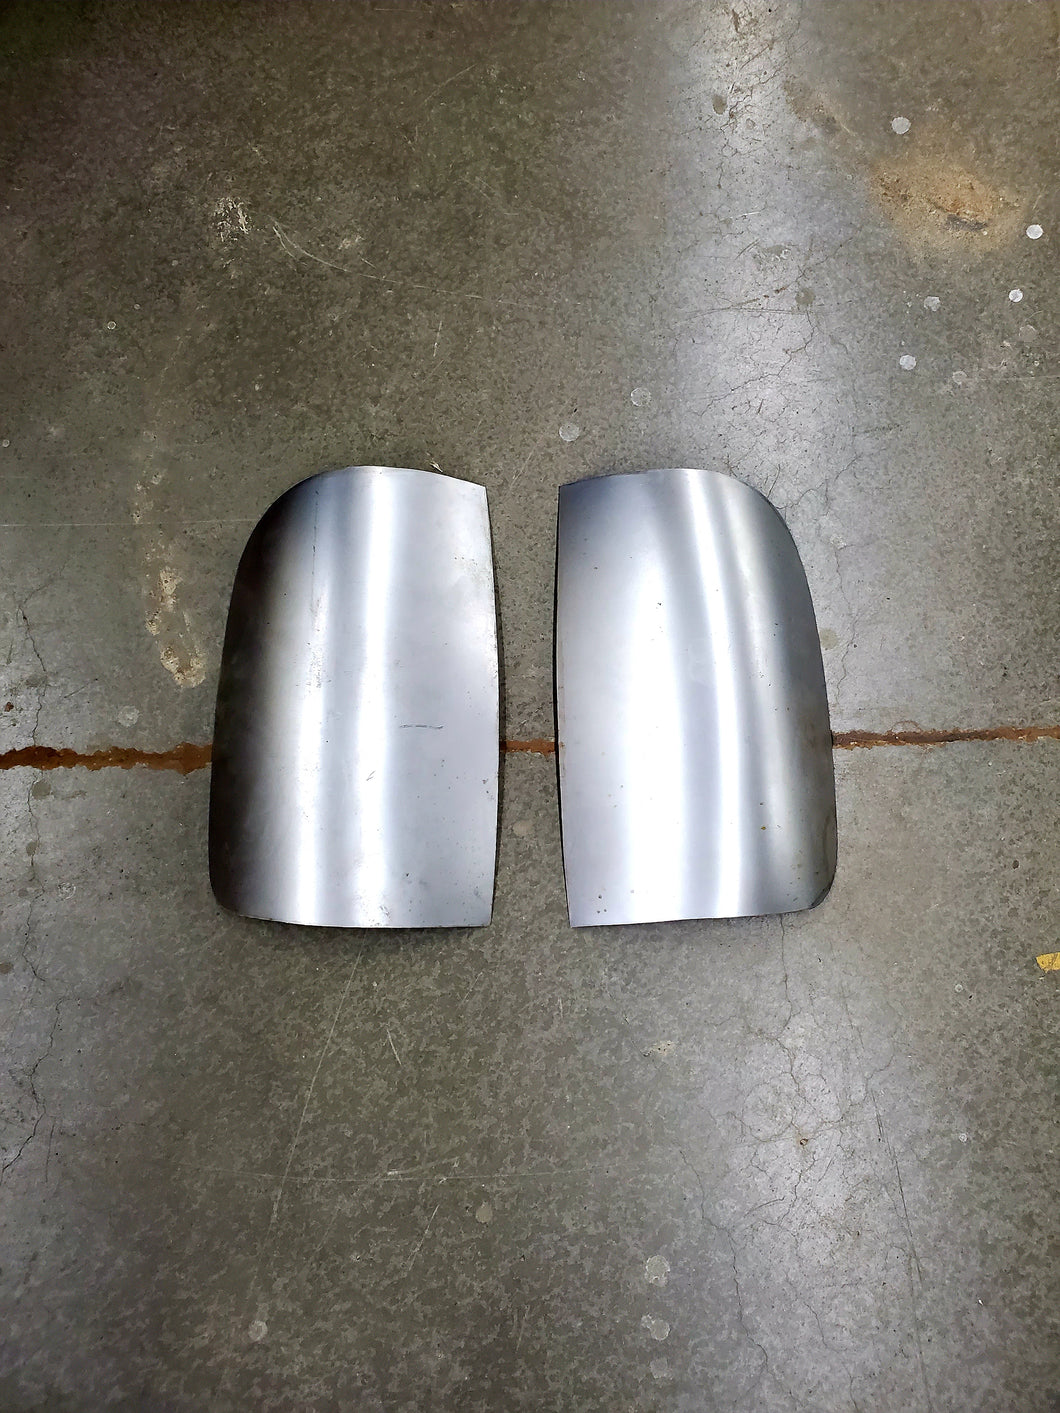 95-05 S-10 Blazer Chevy Taillight Fillers